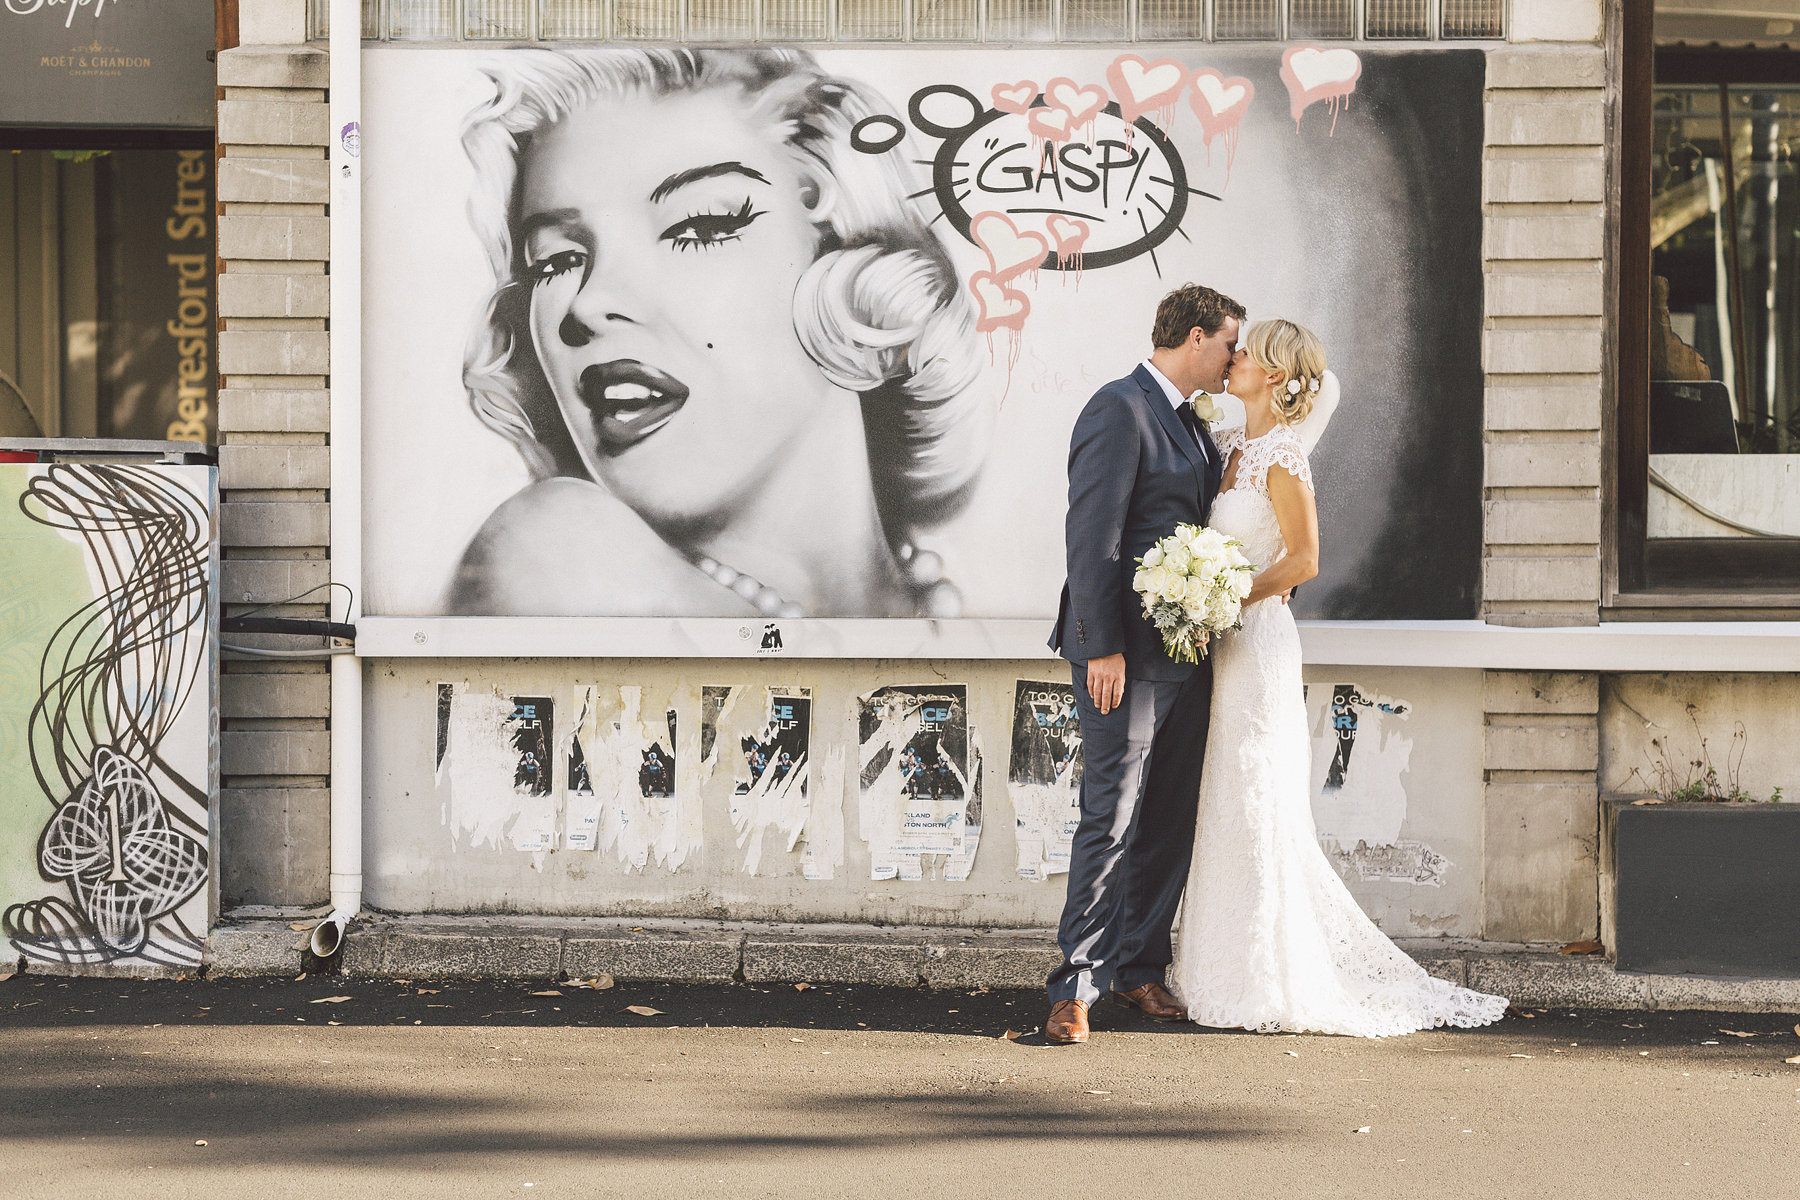 Bride and Groom in front of graffiti with large poster of Marilyn Monroe at a wedding where Diane was the celebrant